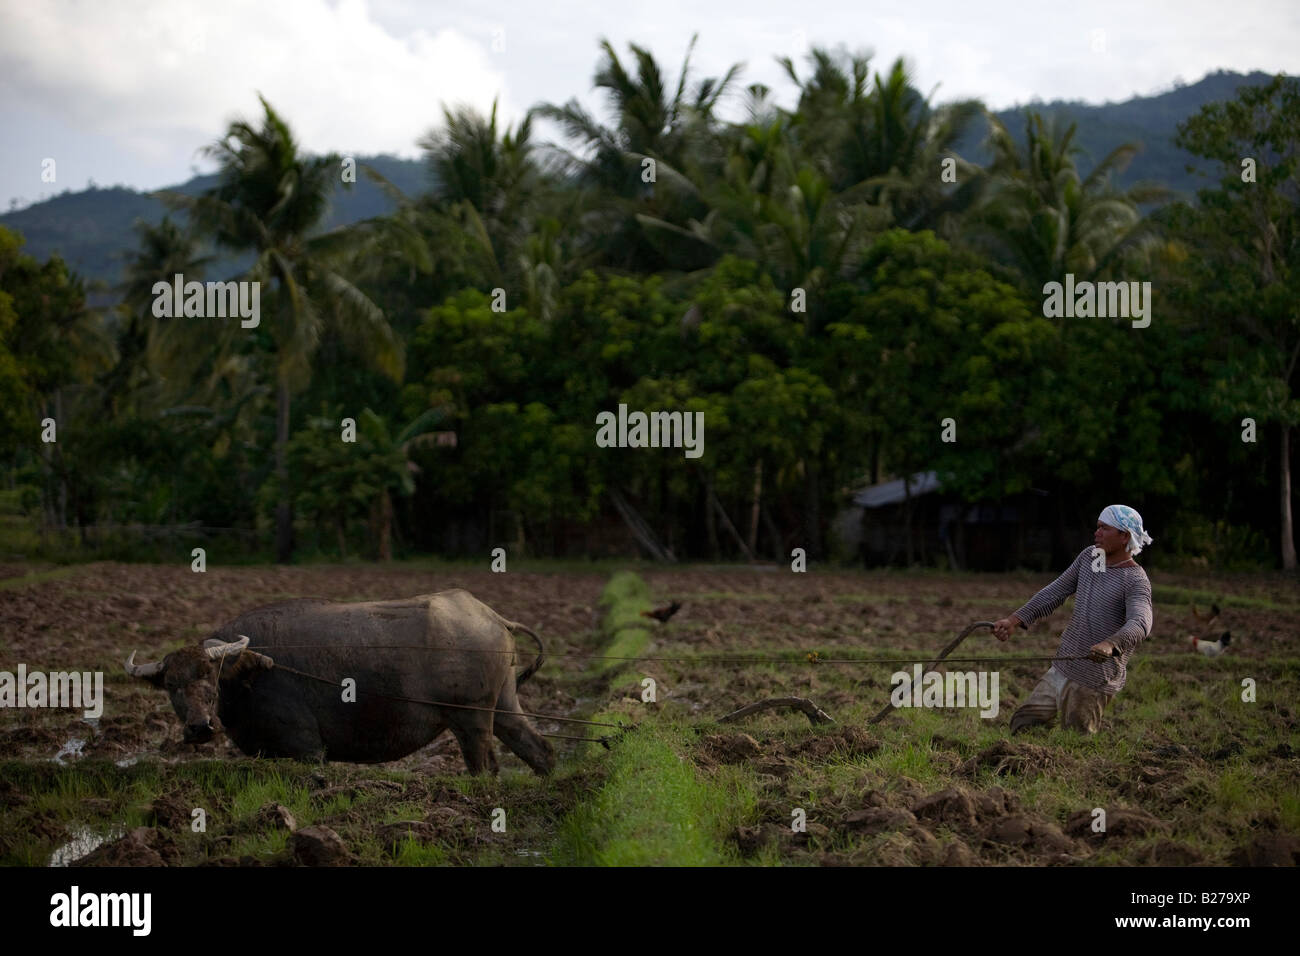 A Filipino worker drives a carabao while tending a rice field near Mansalay, Oriental Mindoro, Philippines. - Stock Image